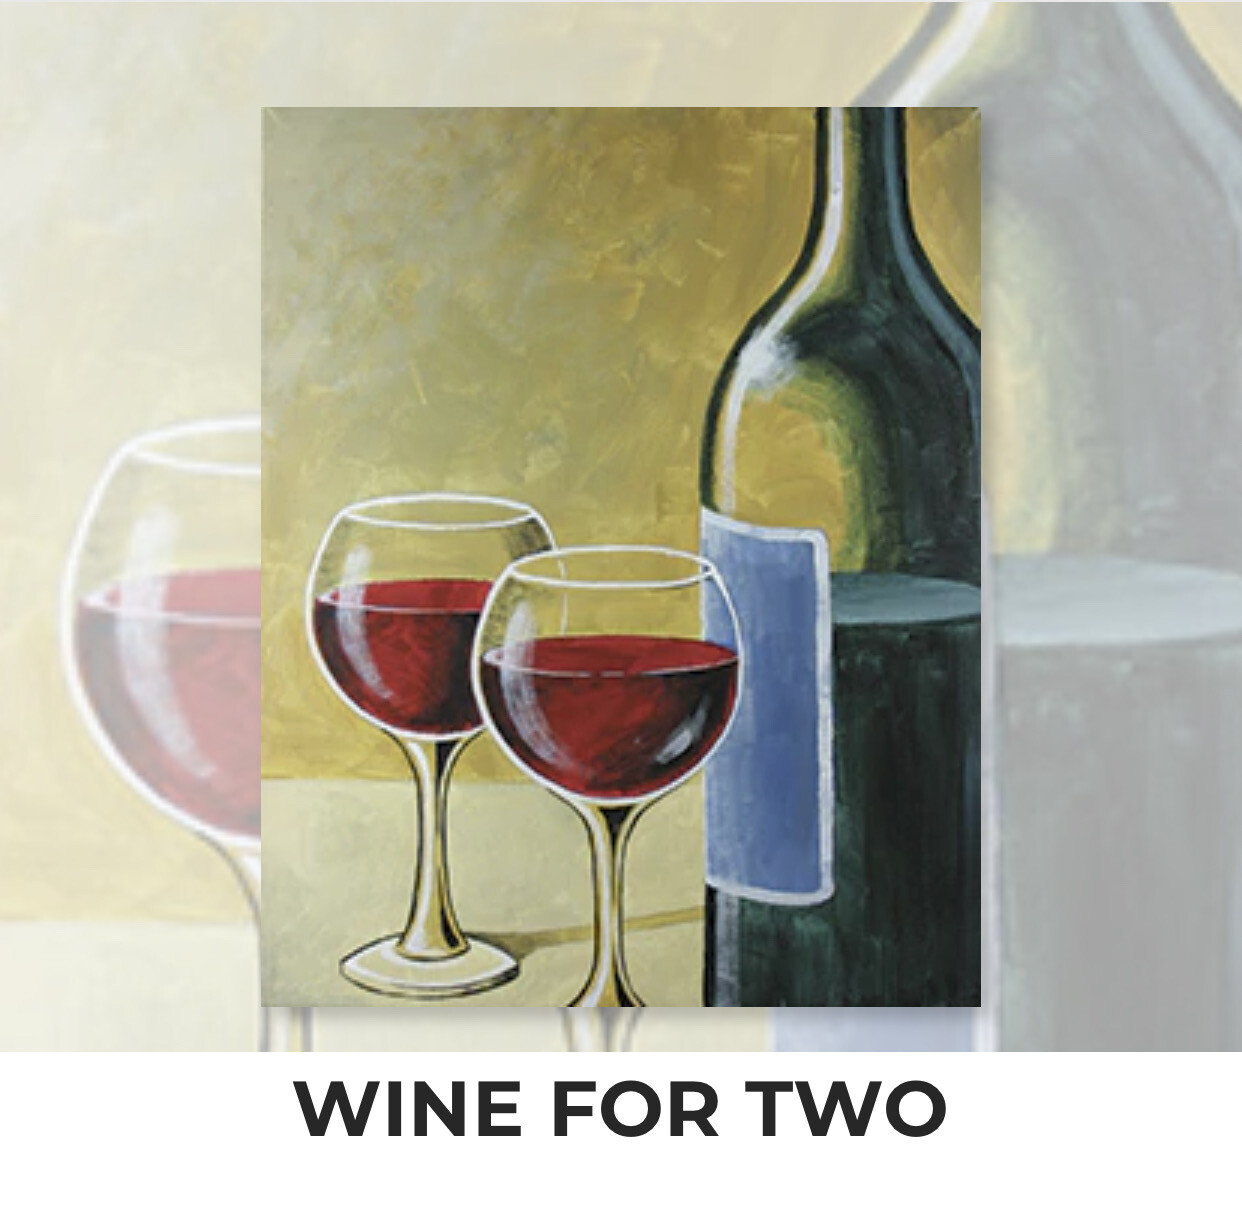 Wine For Two ADULT Acrylic Paint On Canvas DIY Art Kit - 3 Week Special Order